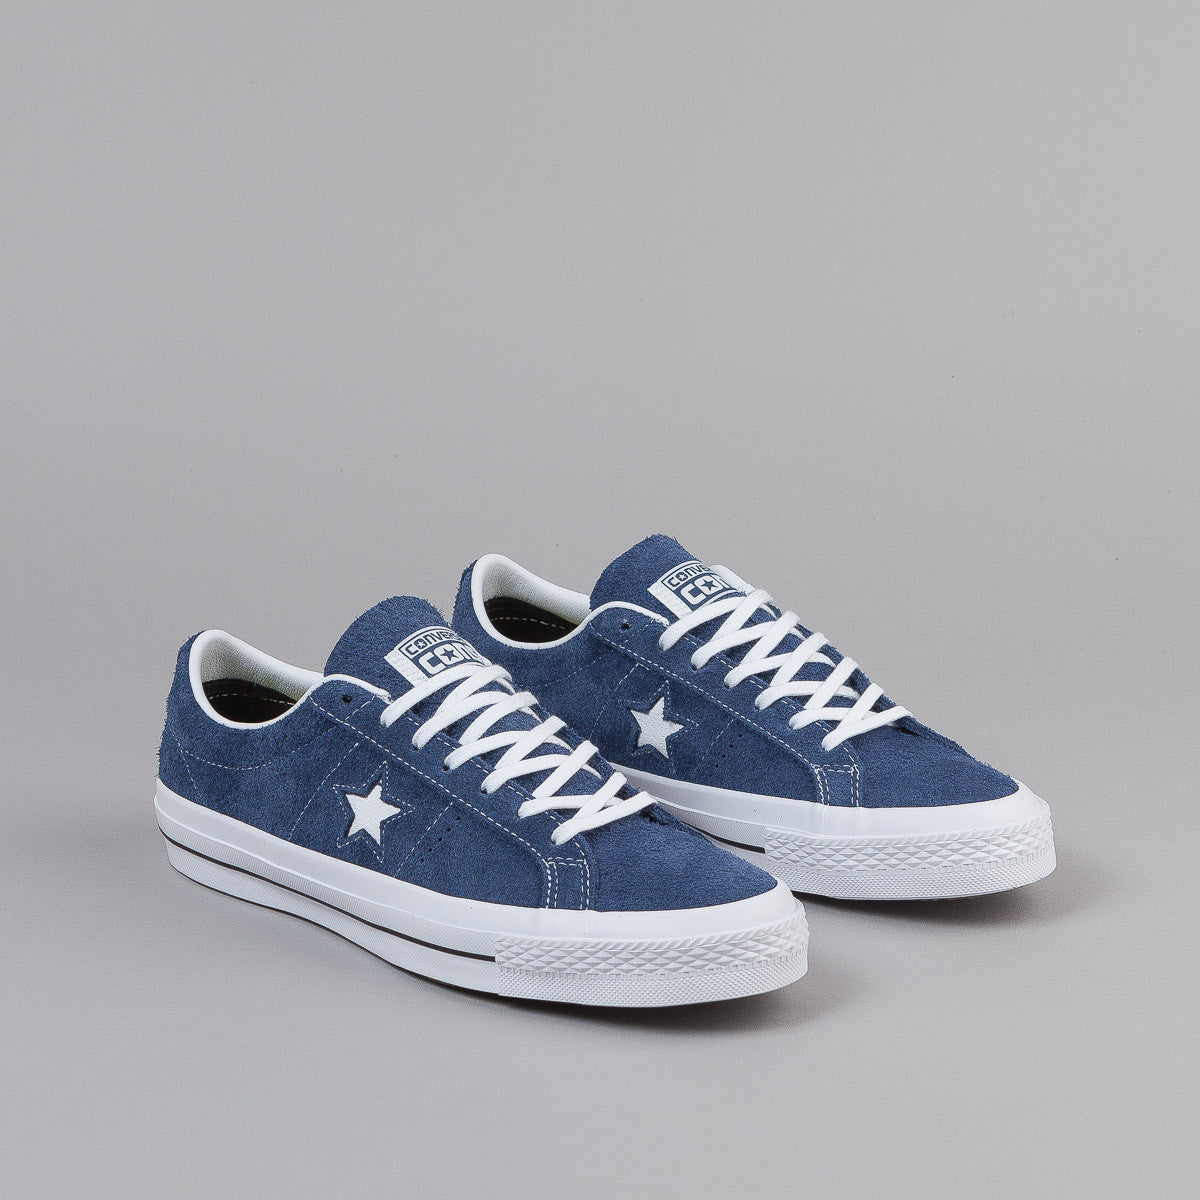 Converse One Star Ox Shoes Navy White Gum Flatspot